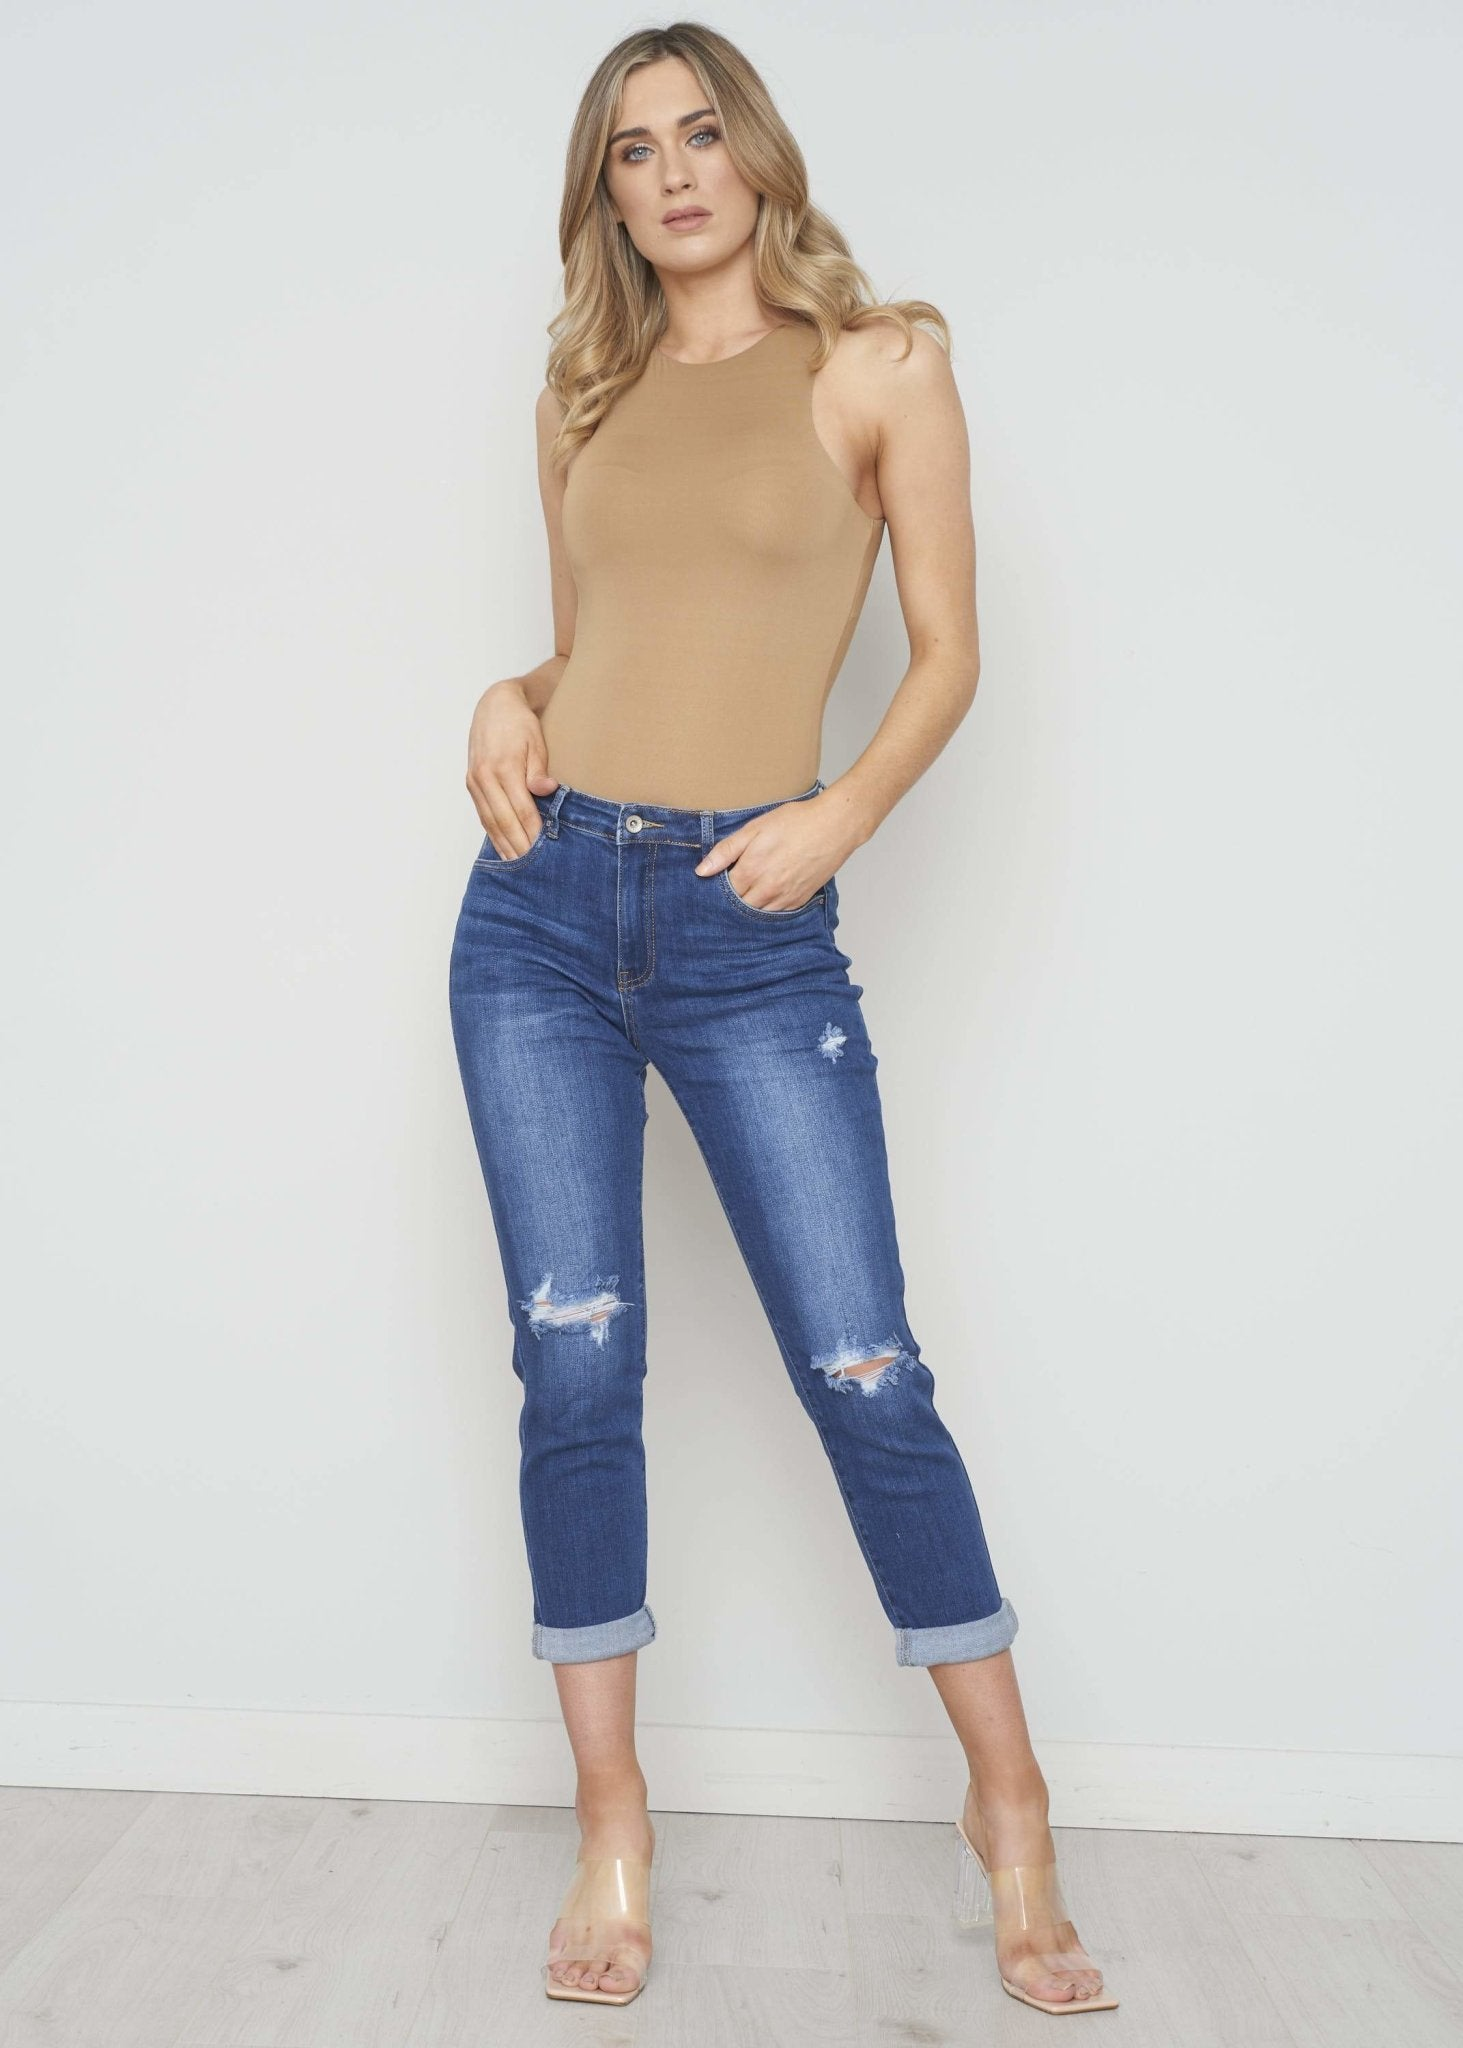 Ciara Distressed Boyfriend Jean In Denim - The Walk in Wardrobe